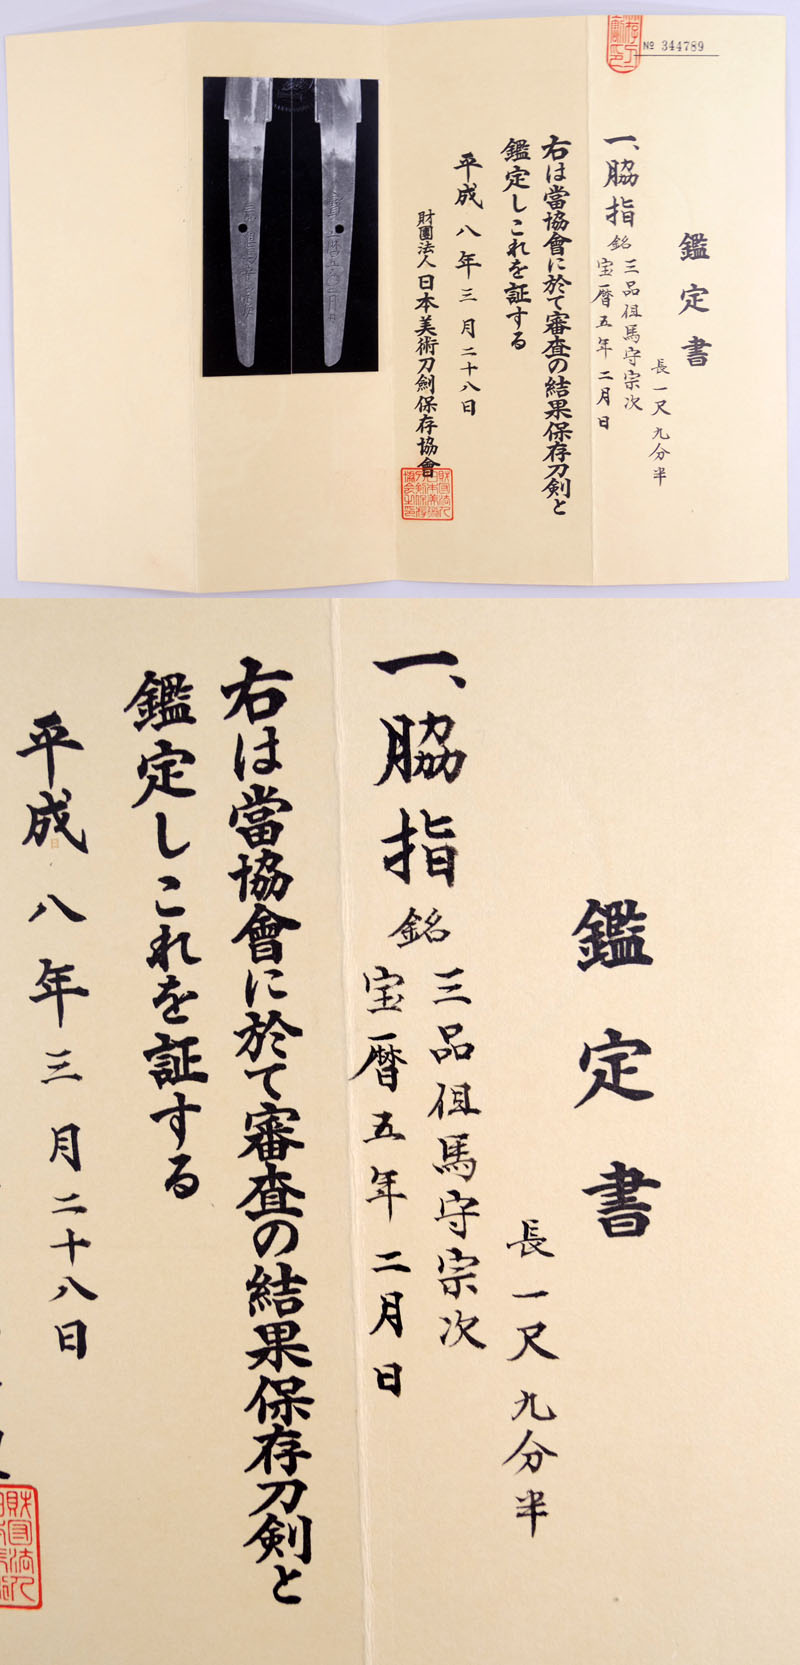 三品伹馬守宗次 Picture of Certificate